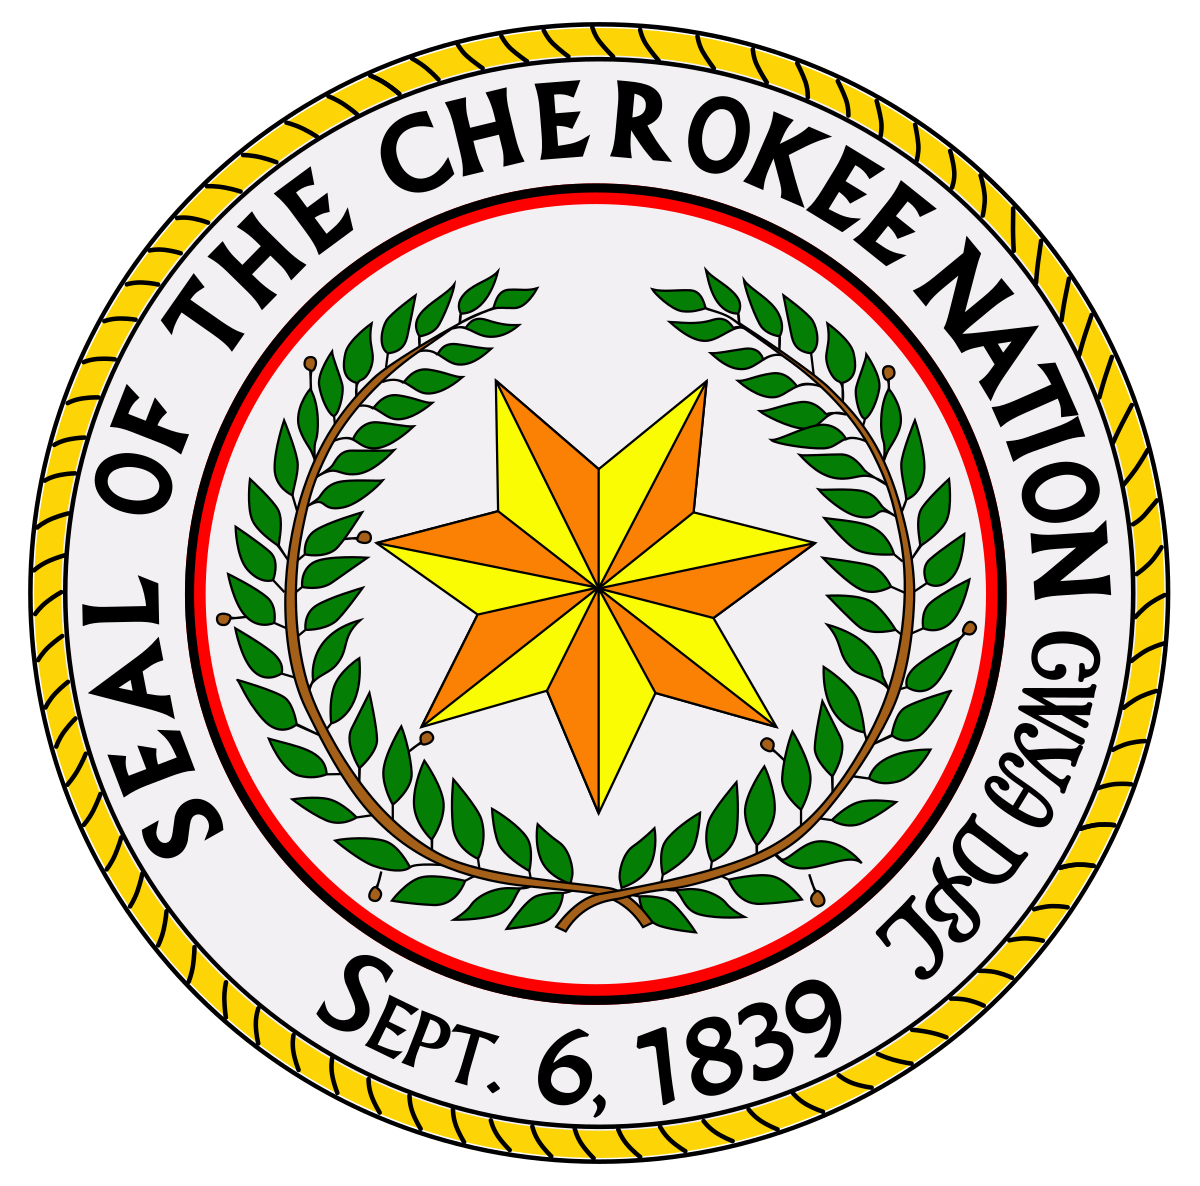 Cherokee Nation Small Business Assistance Center